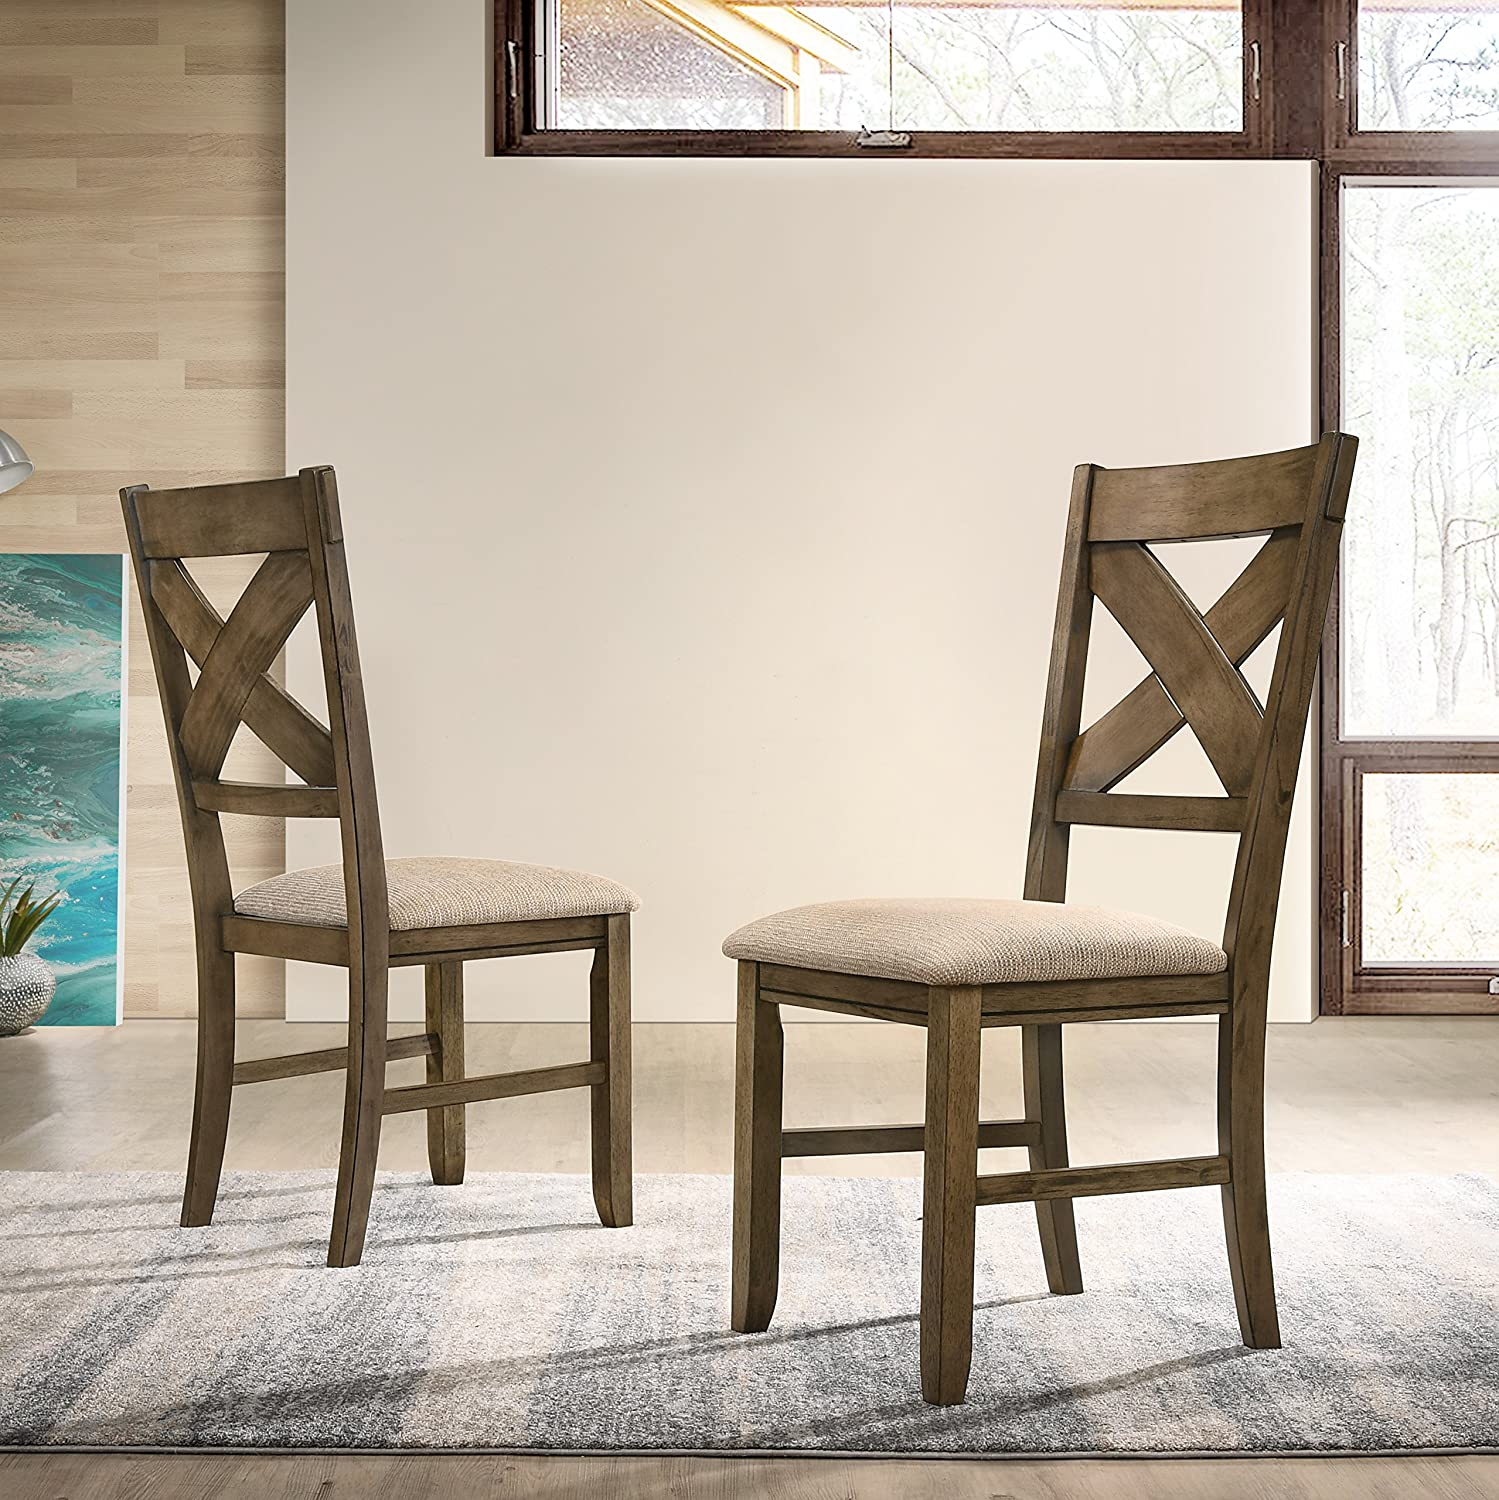 Roundhill Furniture Raven Wood Fabric Upholstered Dining Chair Maple